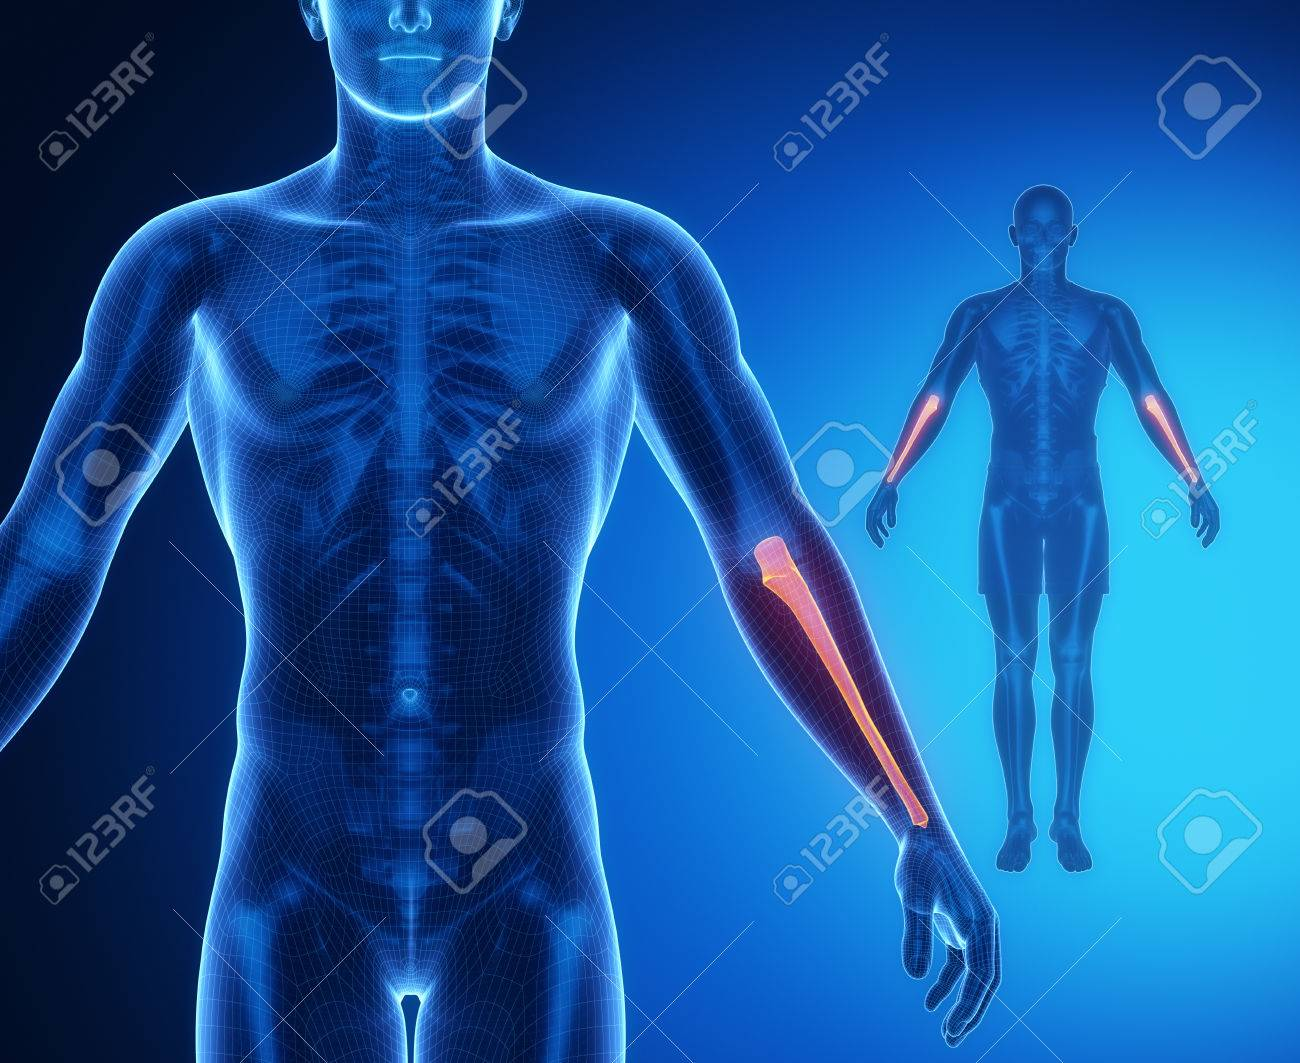 ULNA Bone Anatomy X-ray Scan Stock Photo, Picture And Royalty Free ...